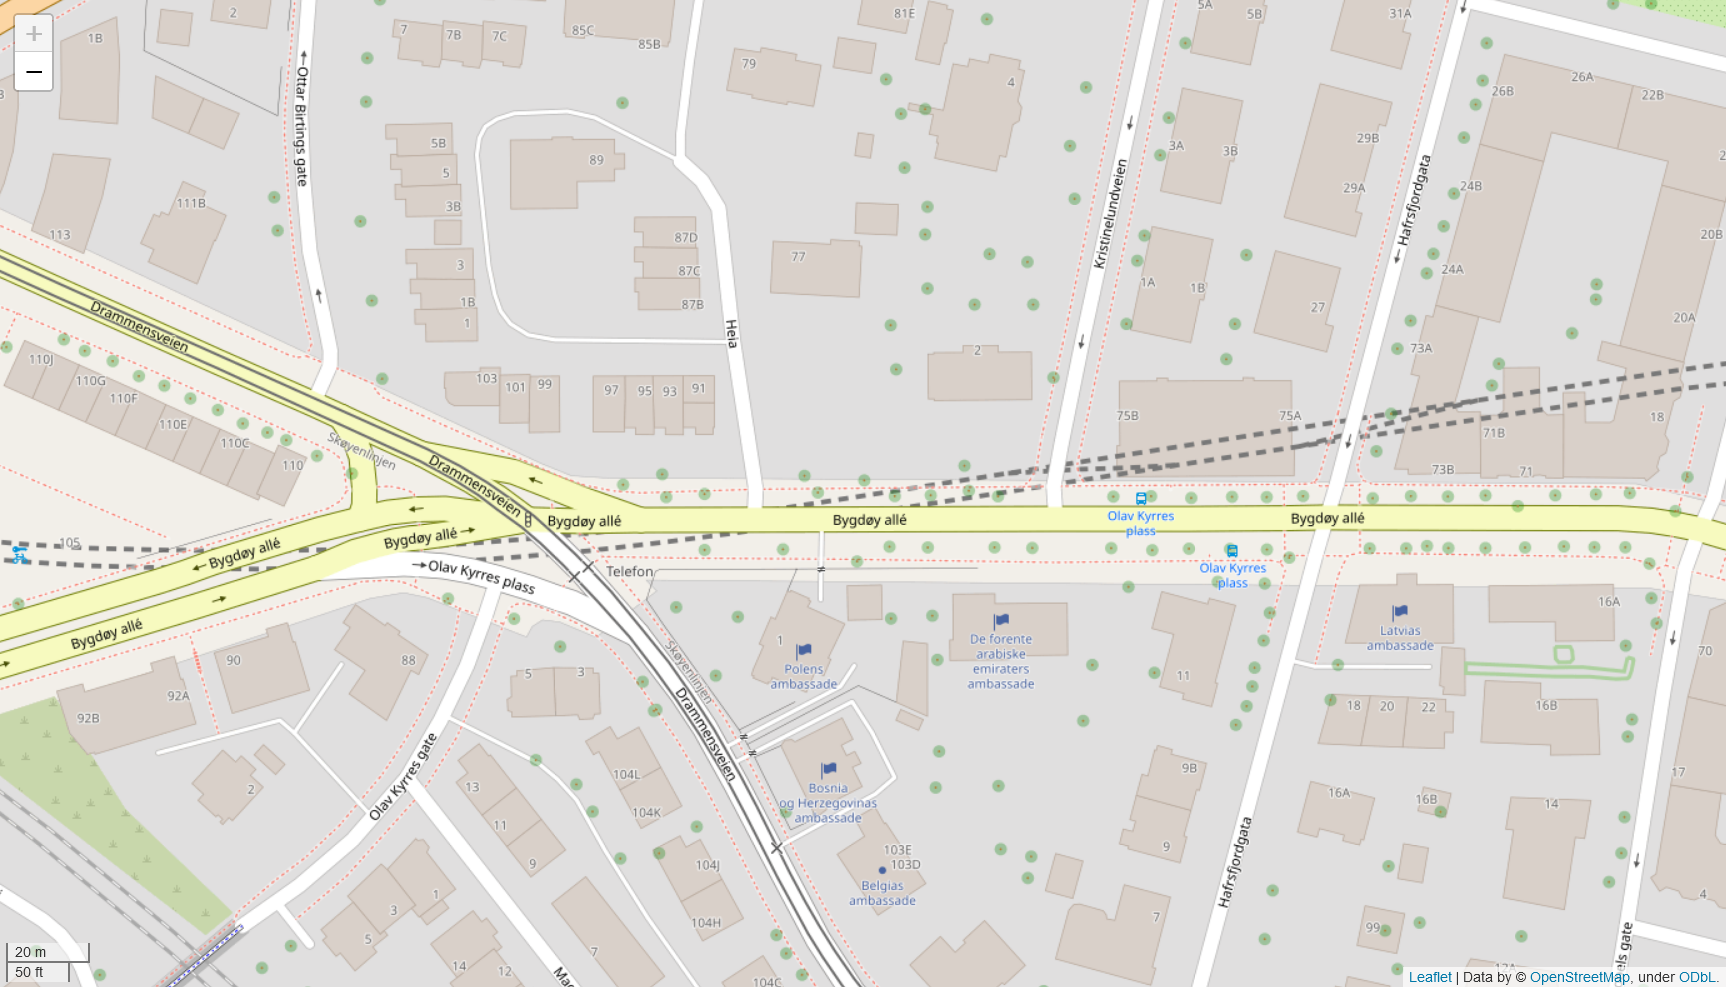 lur_oslo_no2_stats/osm/464_zoom_19.png